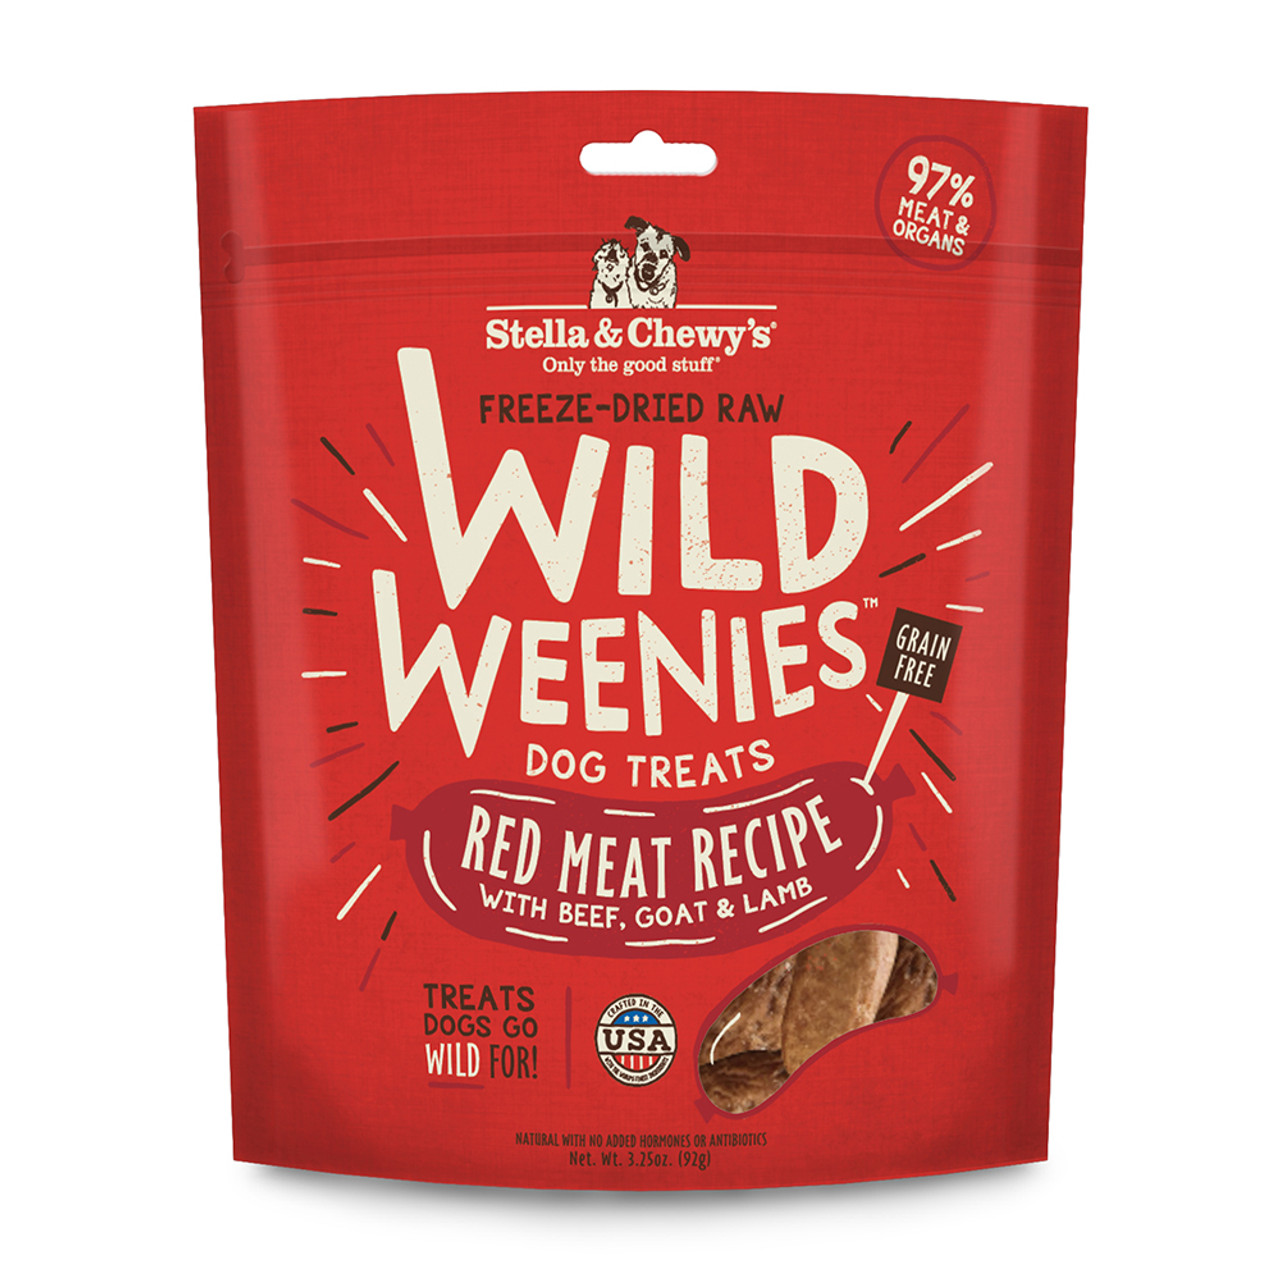 Stella & Chewy's Wild Weenies Red Meat Recipe Dog Treats